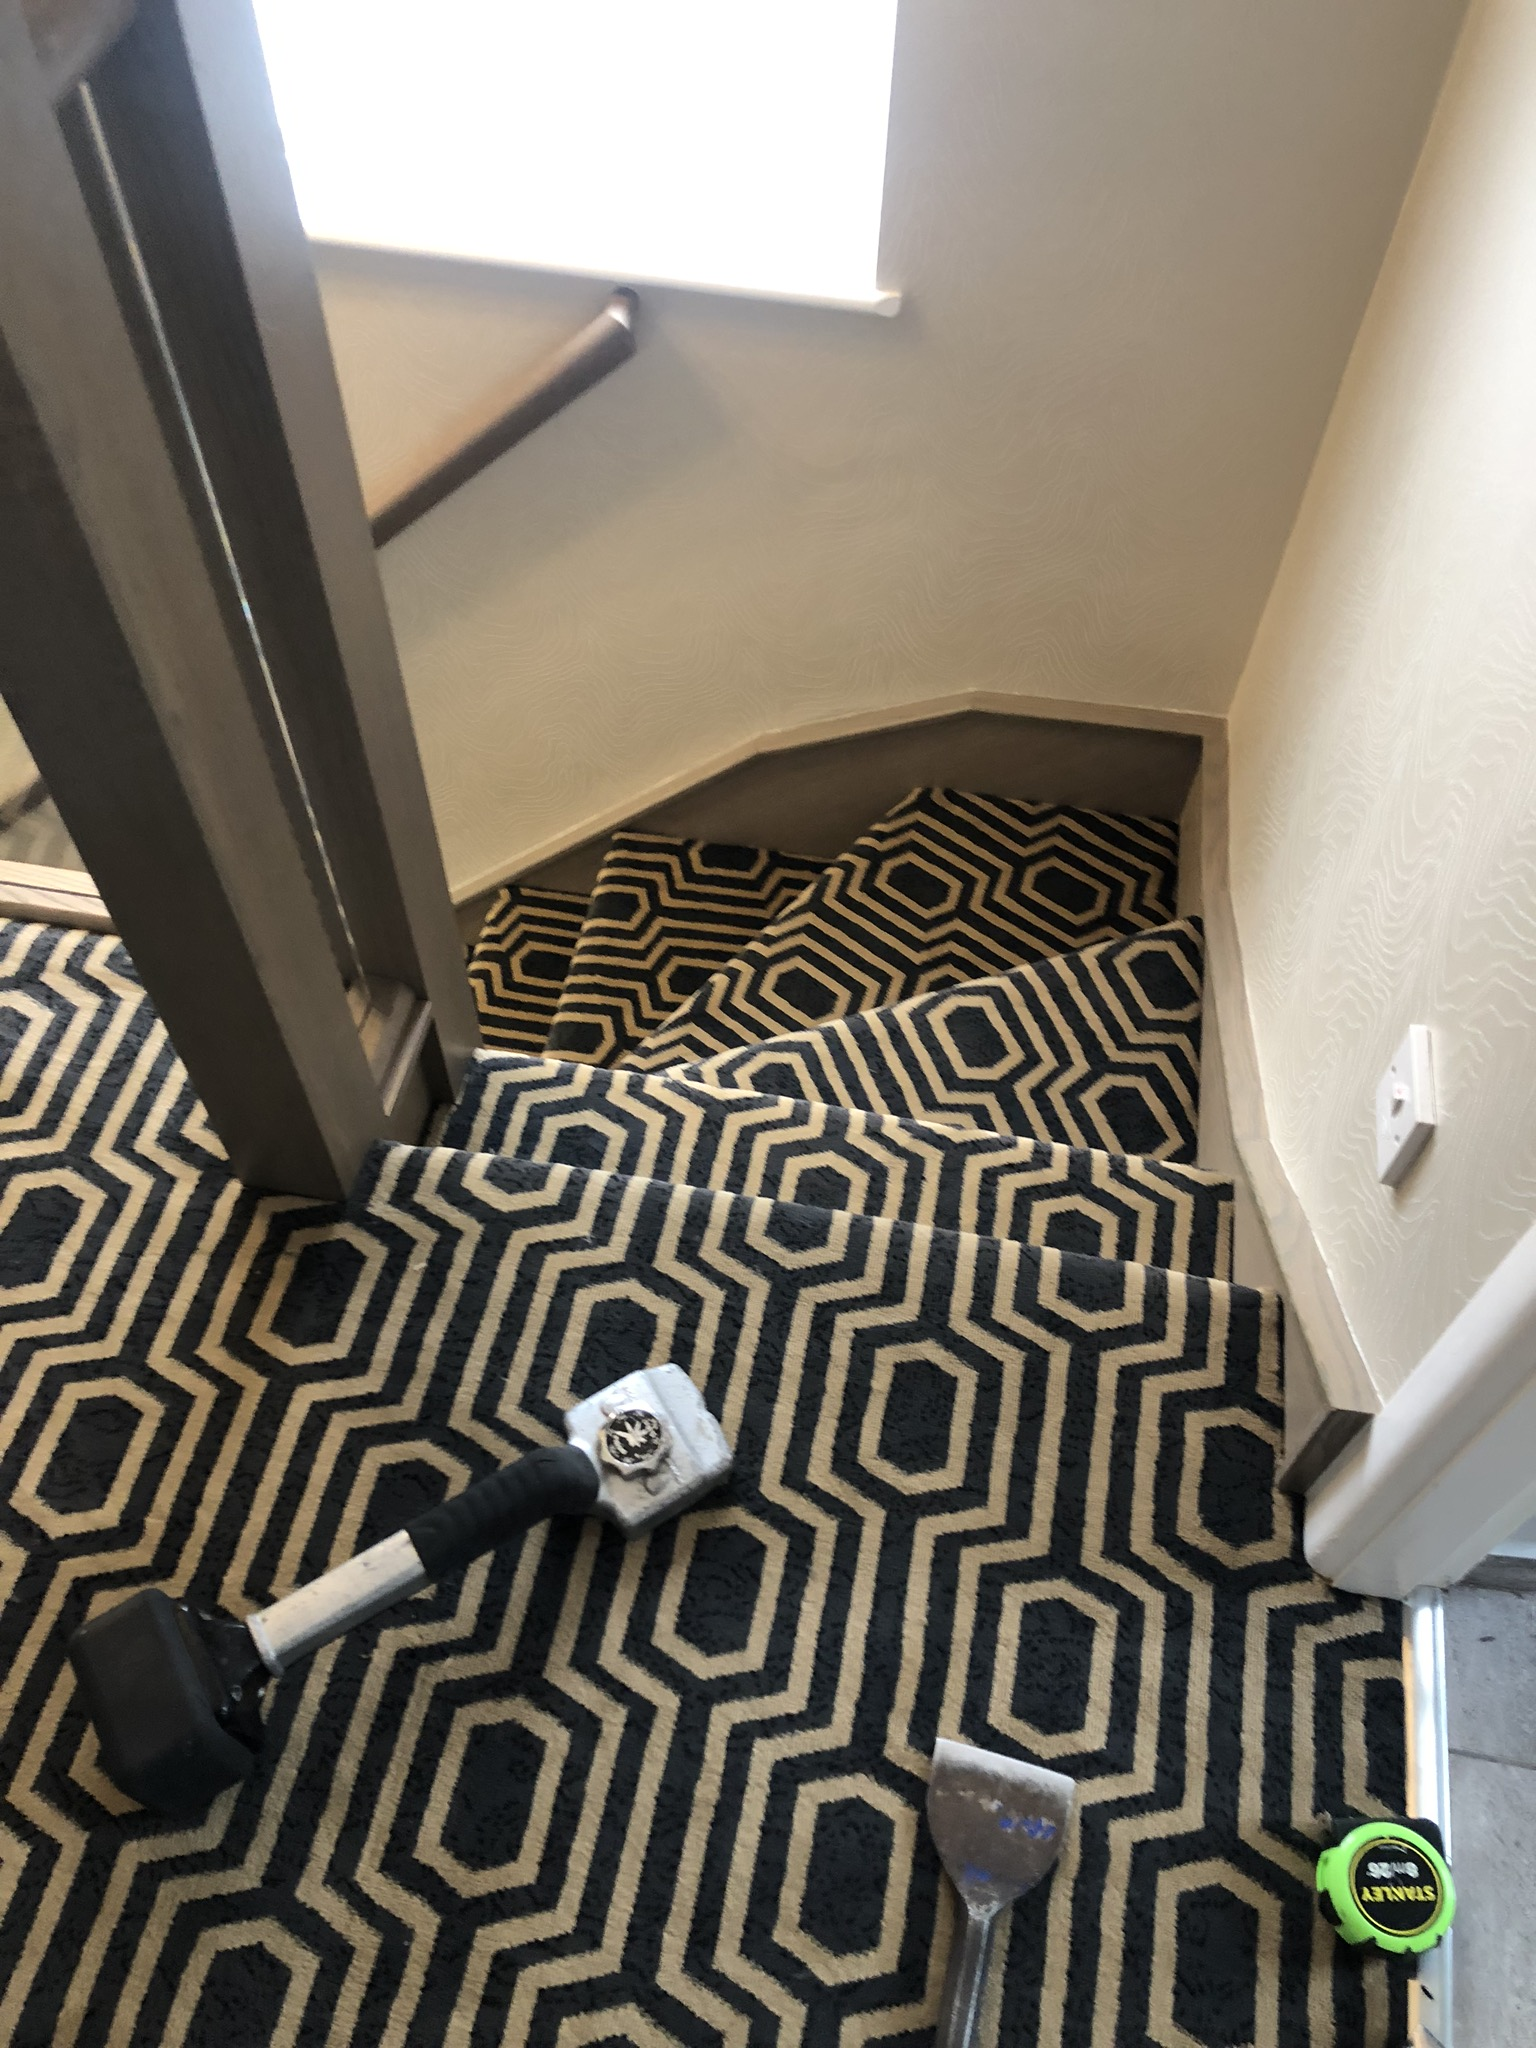 Black Axminster carpet installed in Acton 5